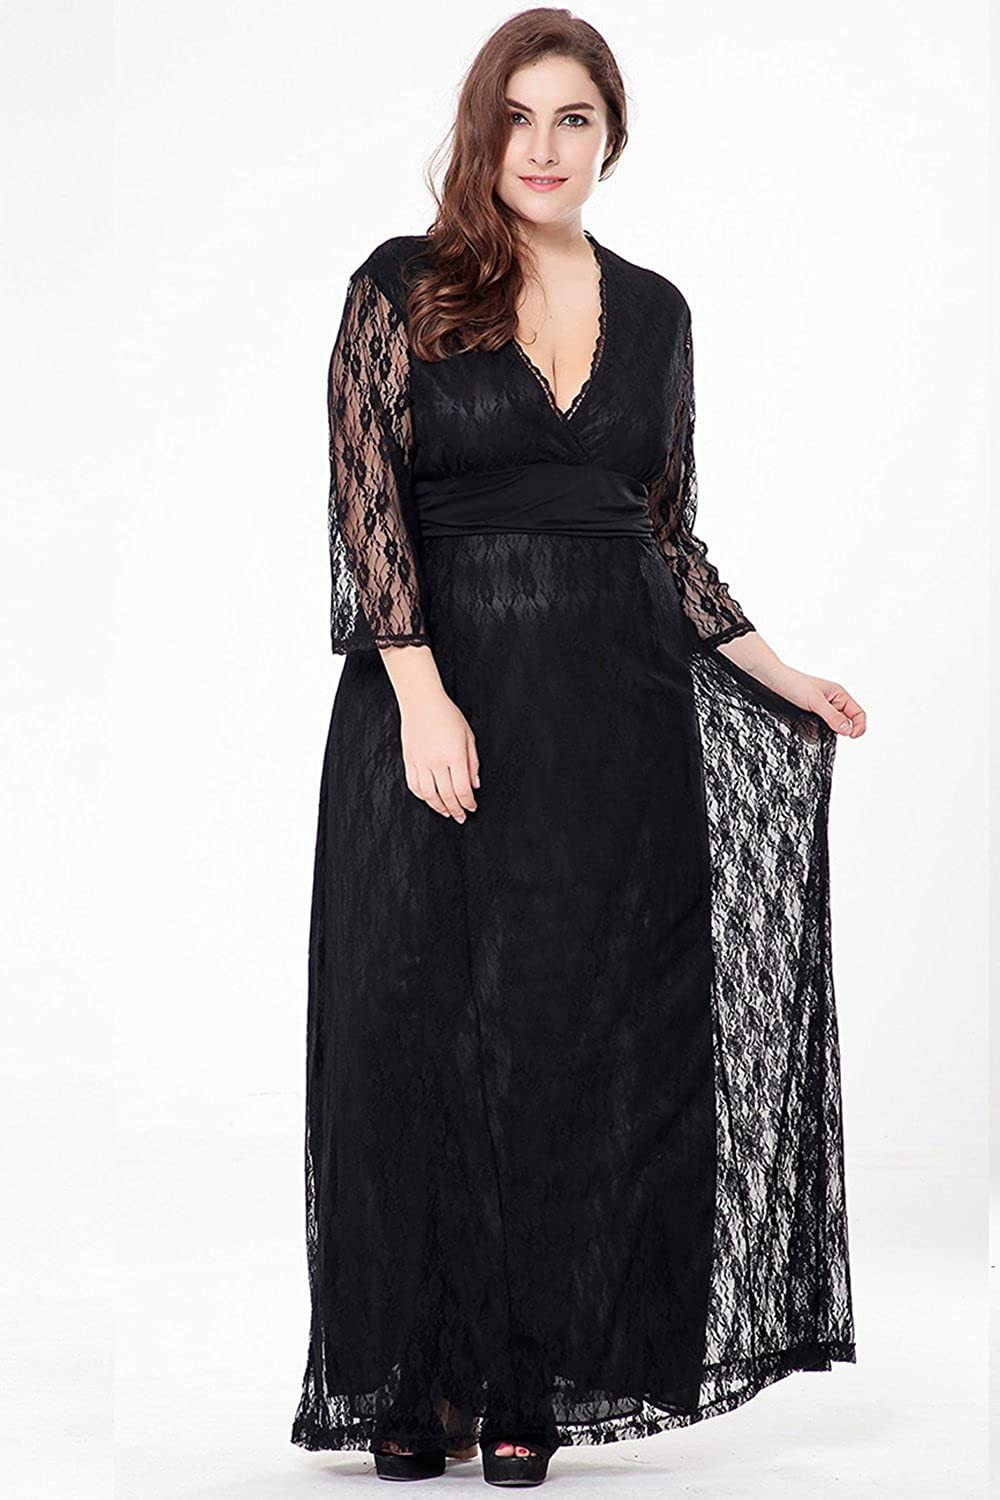 c2a4a9784dc Unomatch Women Plus Size Evening Maxi Gown Dress Black at Amazon Women s  Clothing store